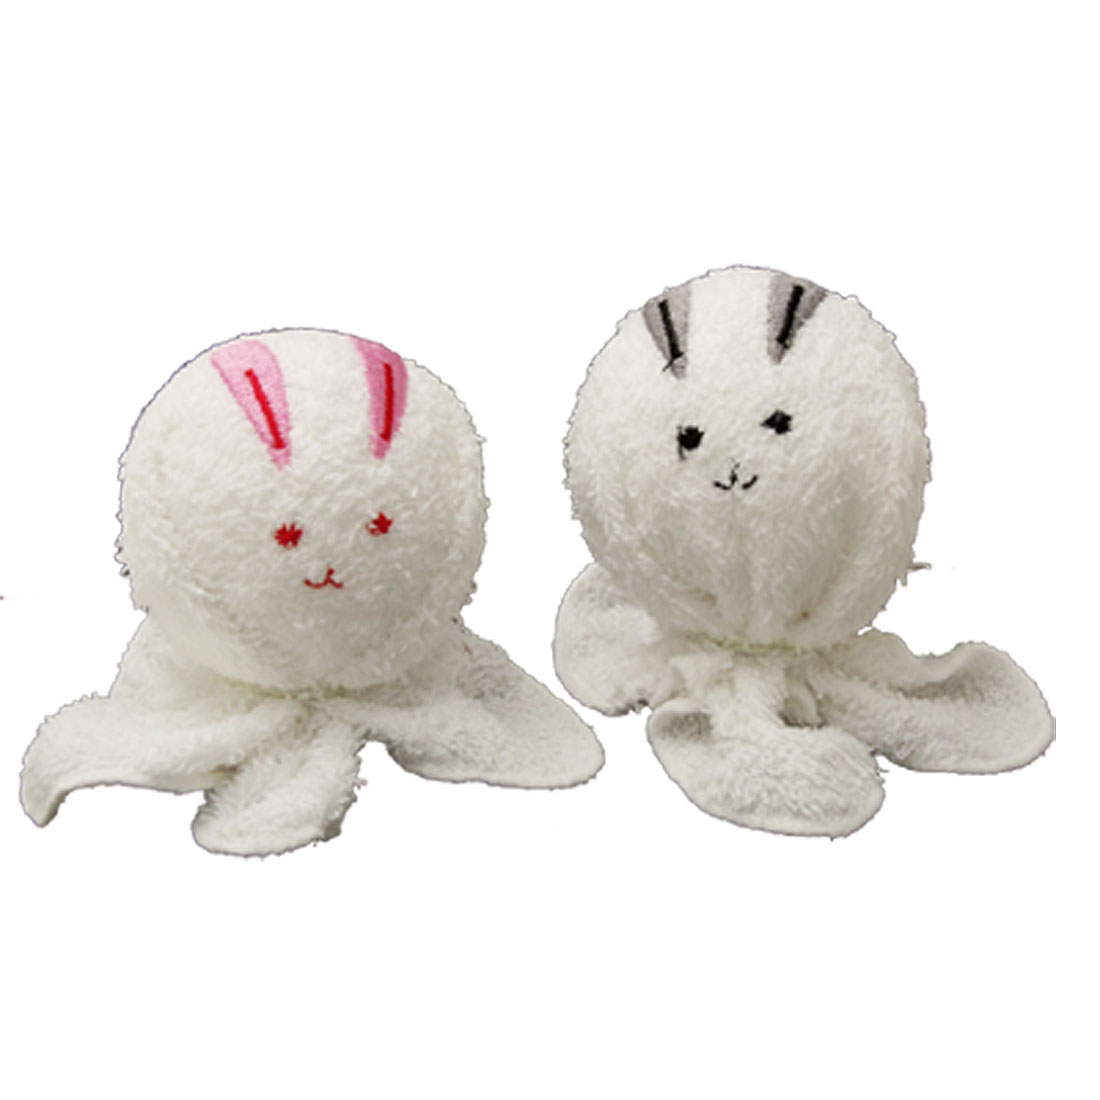 Pair Couple Rabbits Towel Made Gift Desk Decoration